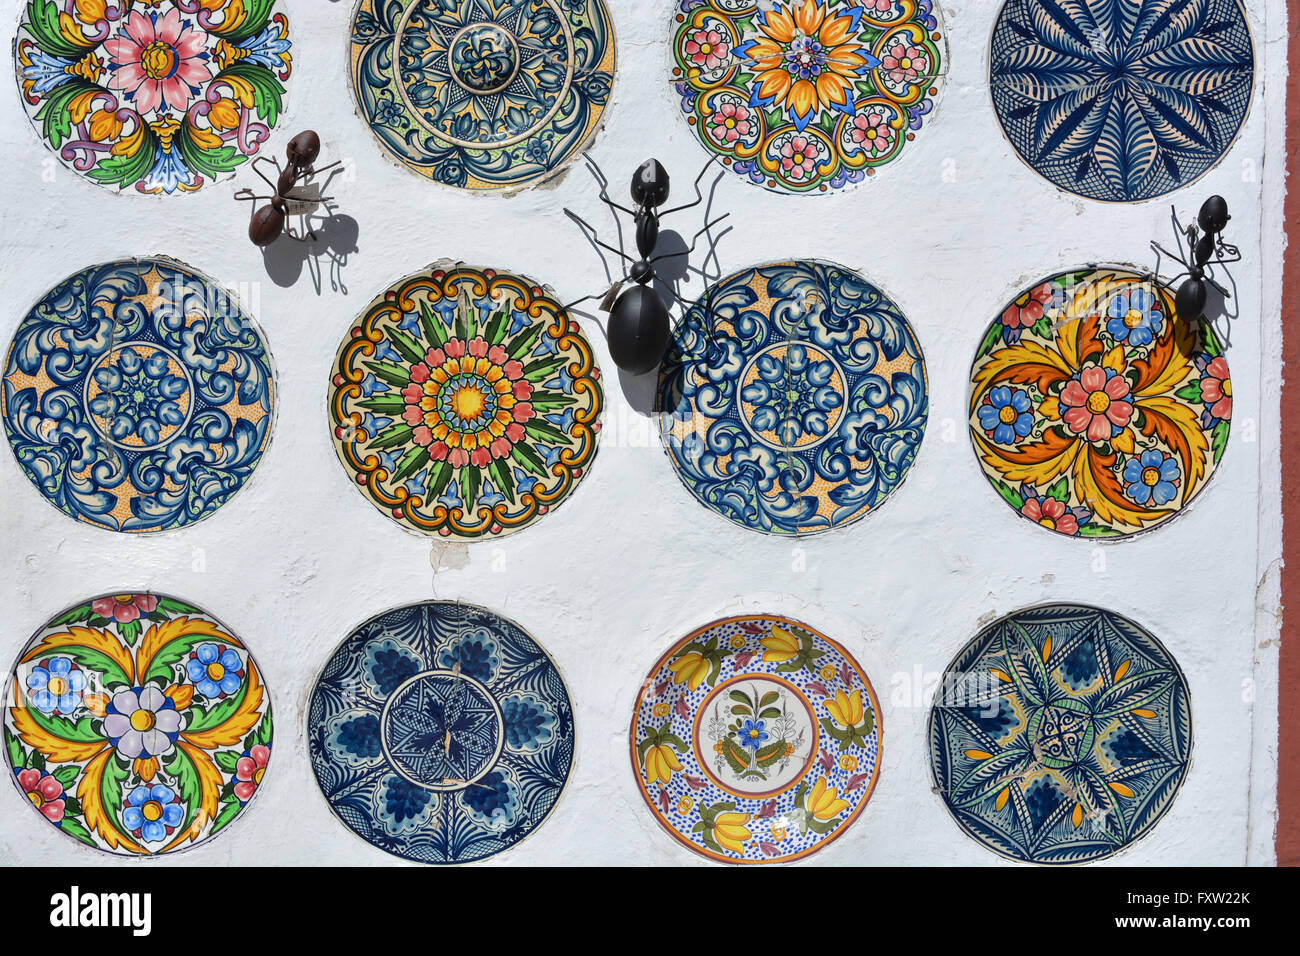 Metal souvenirs stockfotos metal souvenirs bilder alamy - Ameisen in der wand ...